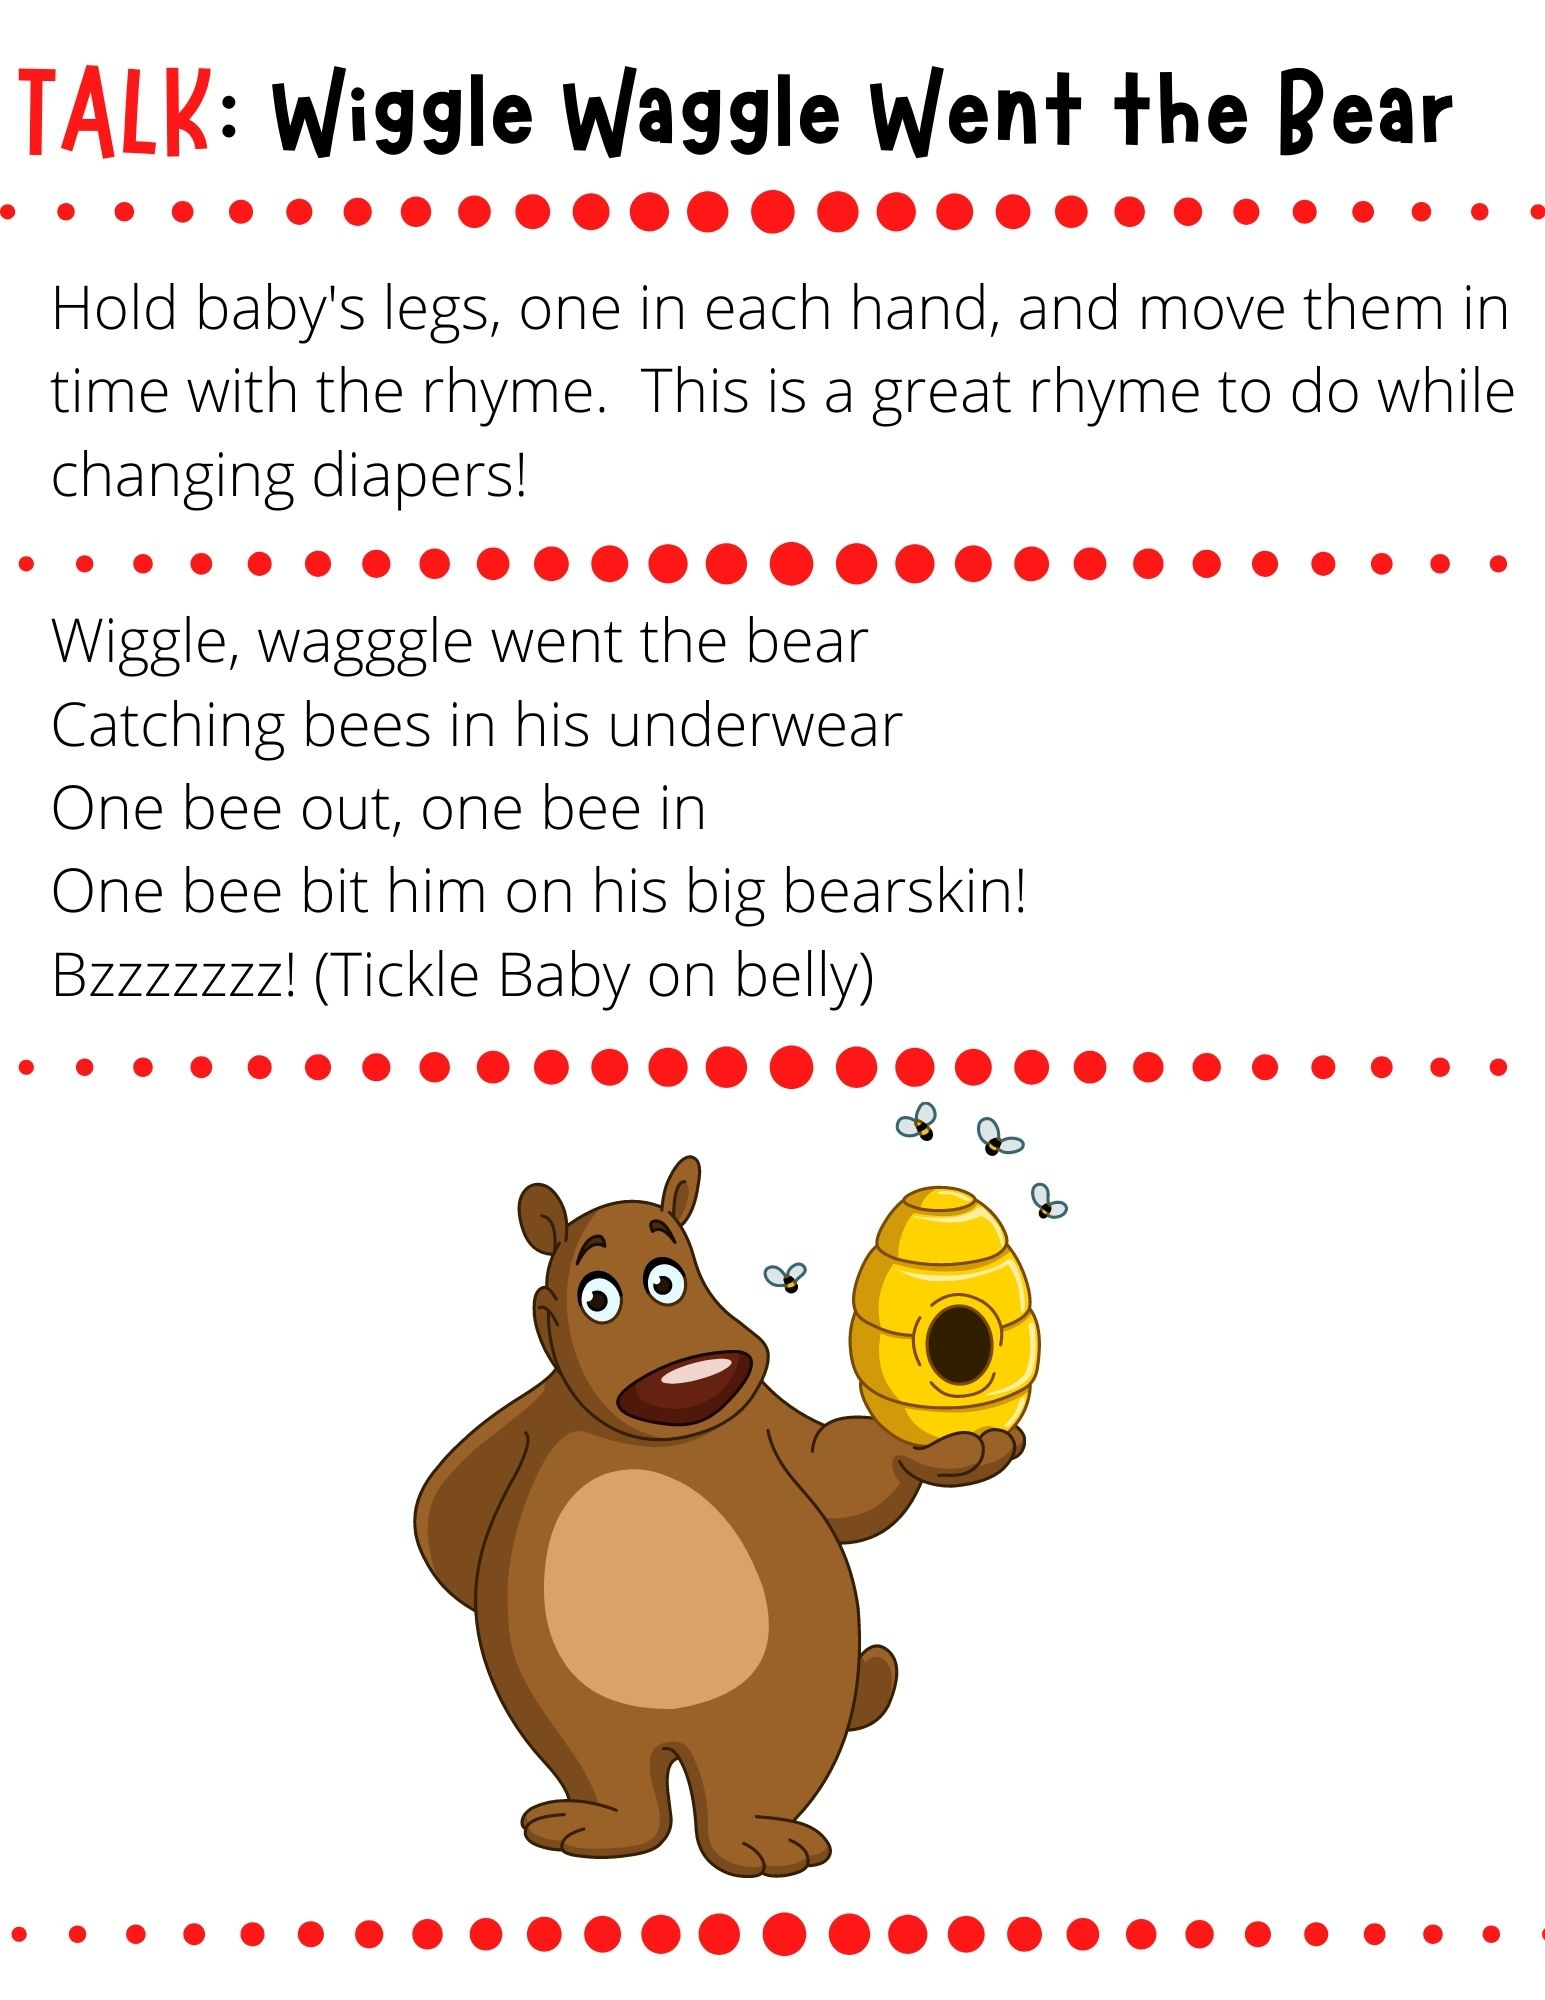 Wiggle, waggle went the bear Catching bees in his underwear One bee out, one bee in One bee bit him on his big bearskin! Bzzzzzzz! (Tickle Baby on belly)